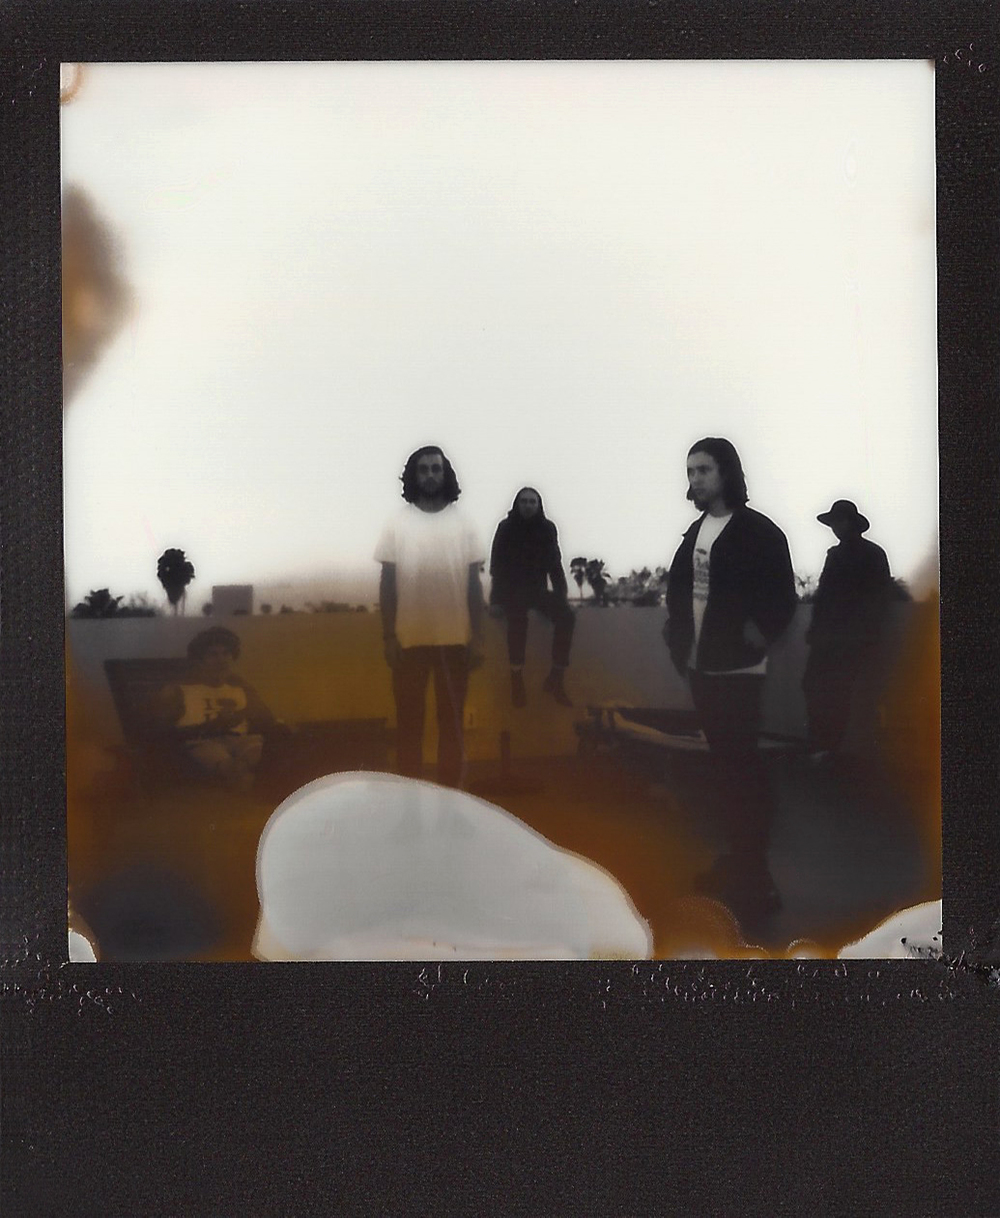 The-NBHD-Polaroid-22-casenruiz.jpg